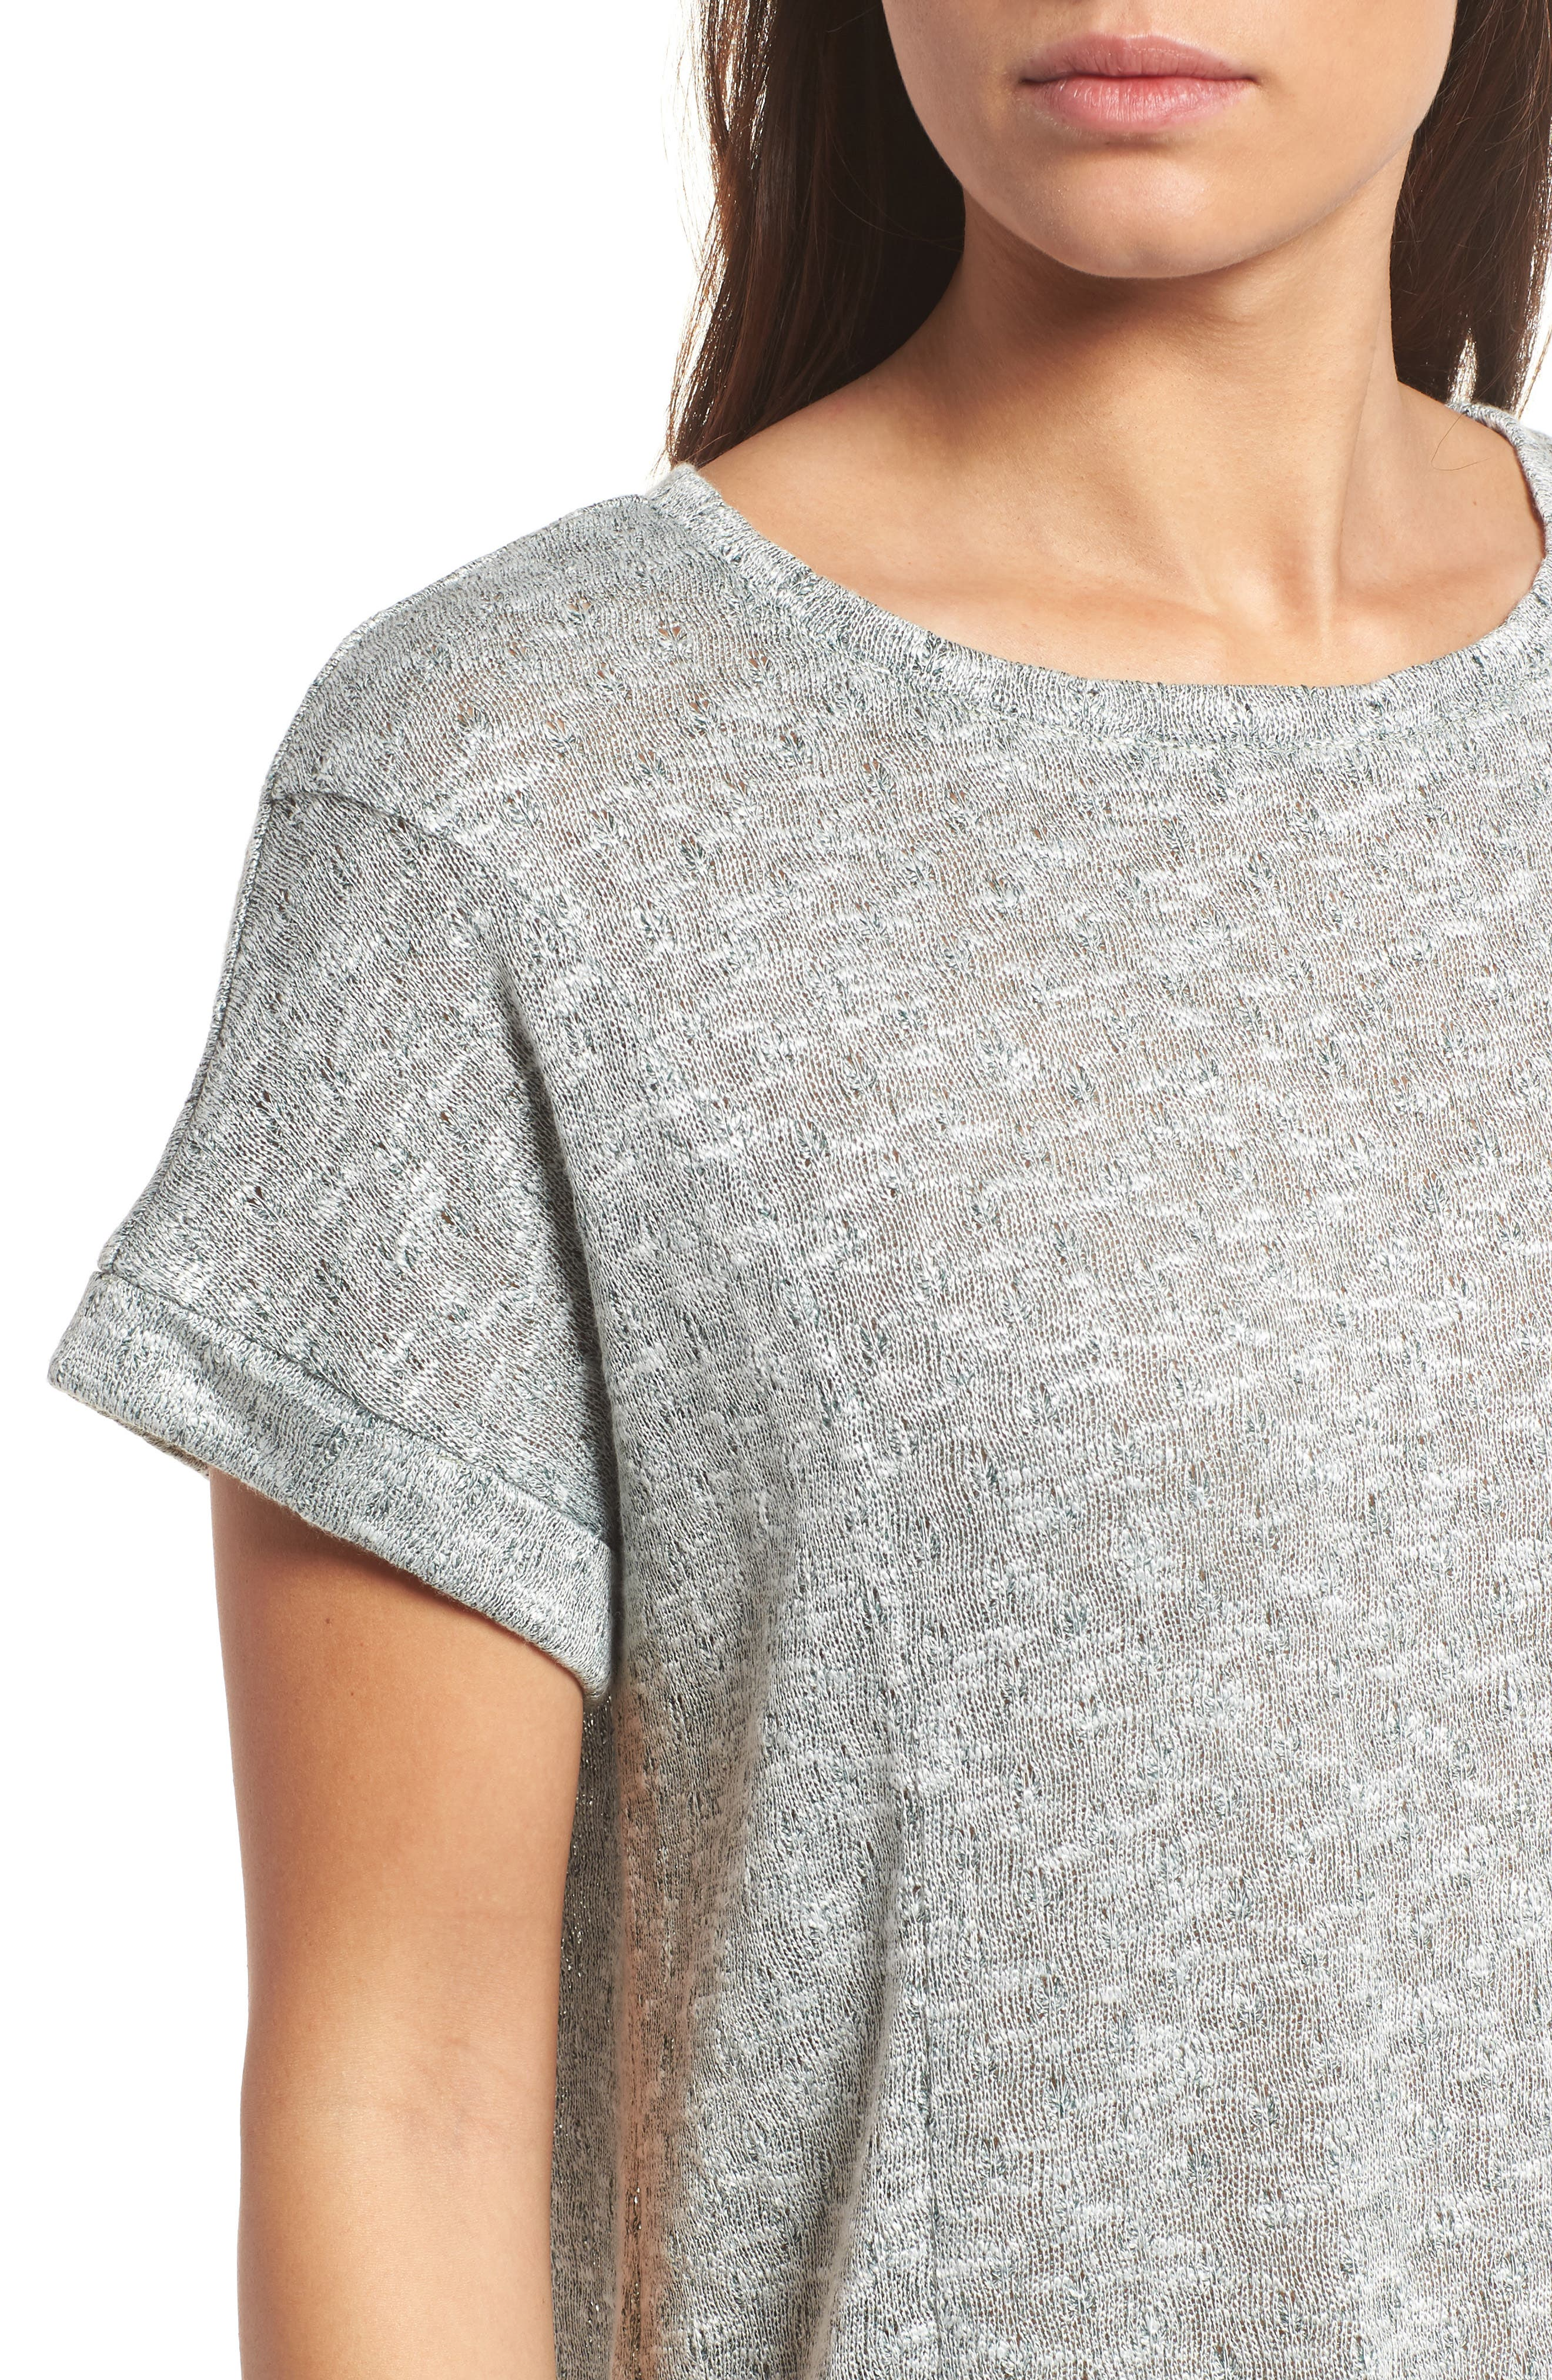 Marled Knit Short Sleeve Top,                             Alternate thumbnail 4, color,                             738-Tropic Moss